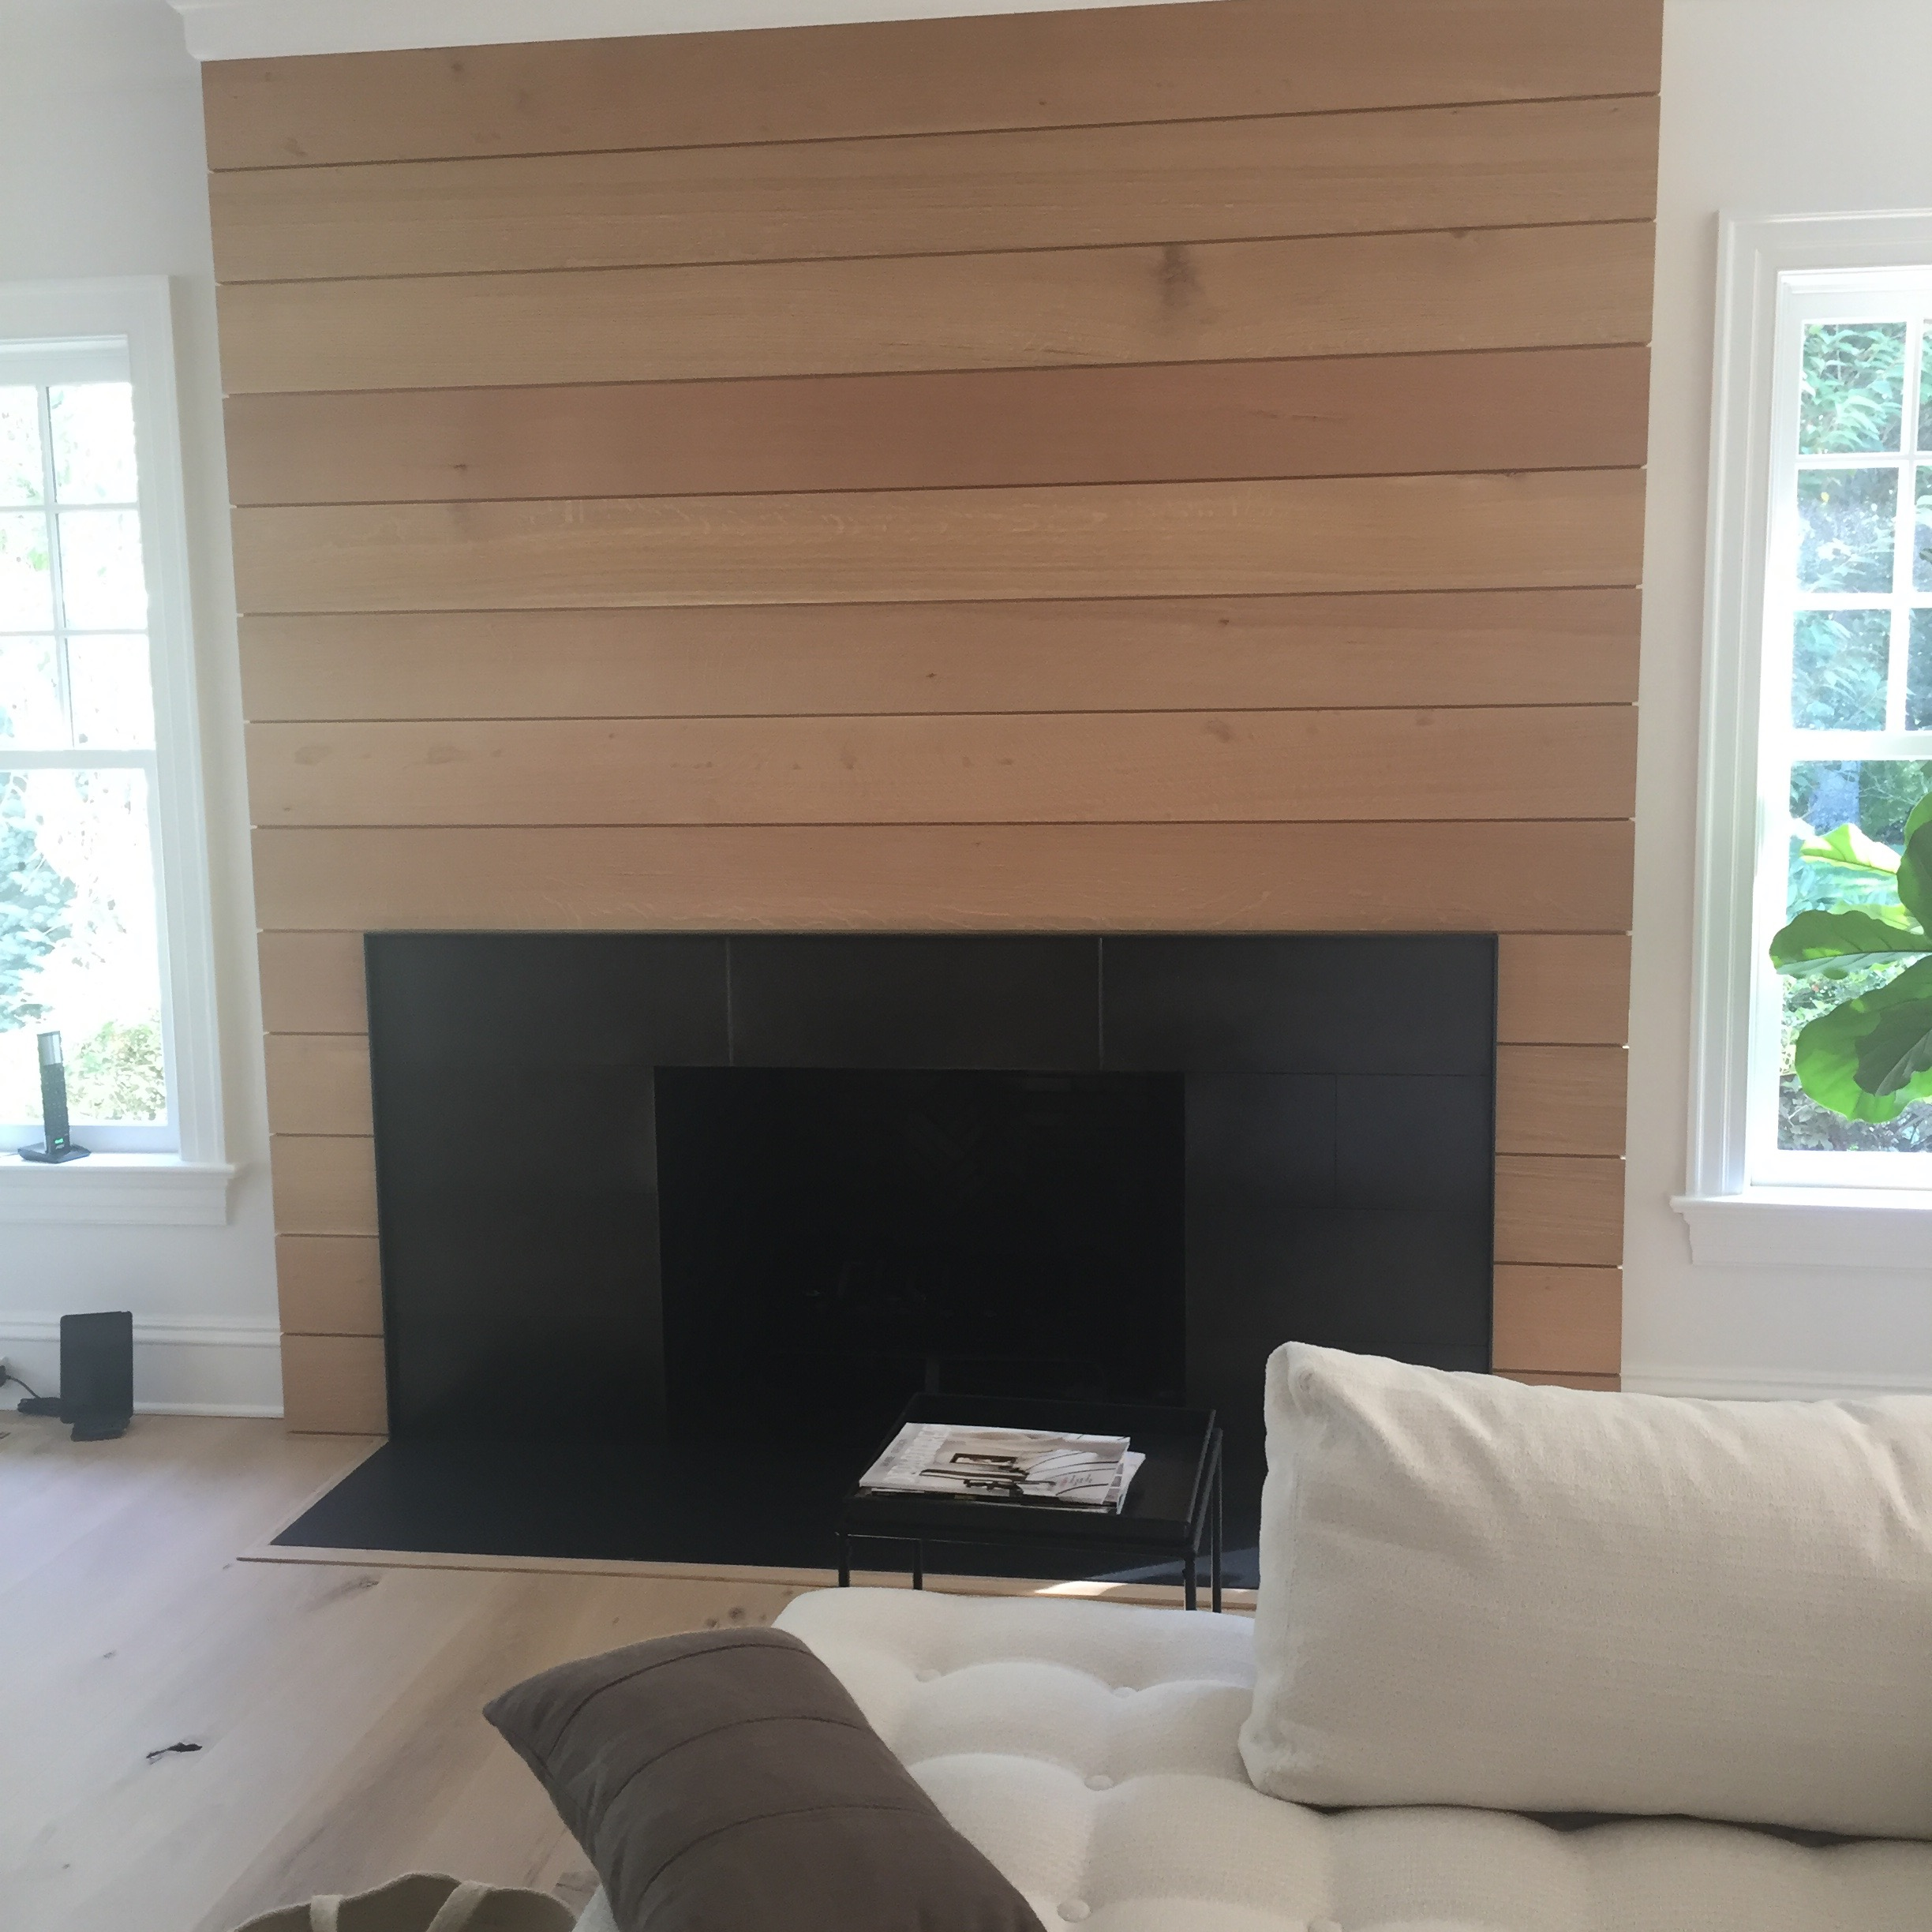 FAMILY ROOM FIREPLACE:  An out-of-scale large traditional wood mantle and stone surround were demolished and replaced with a clean, white-oak ship lap wall treatment and a blackened steel surround.